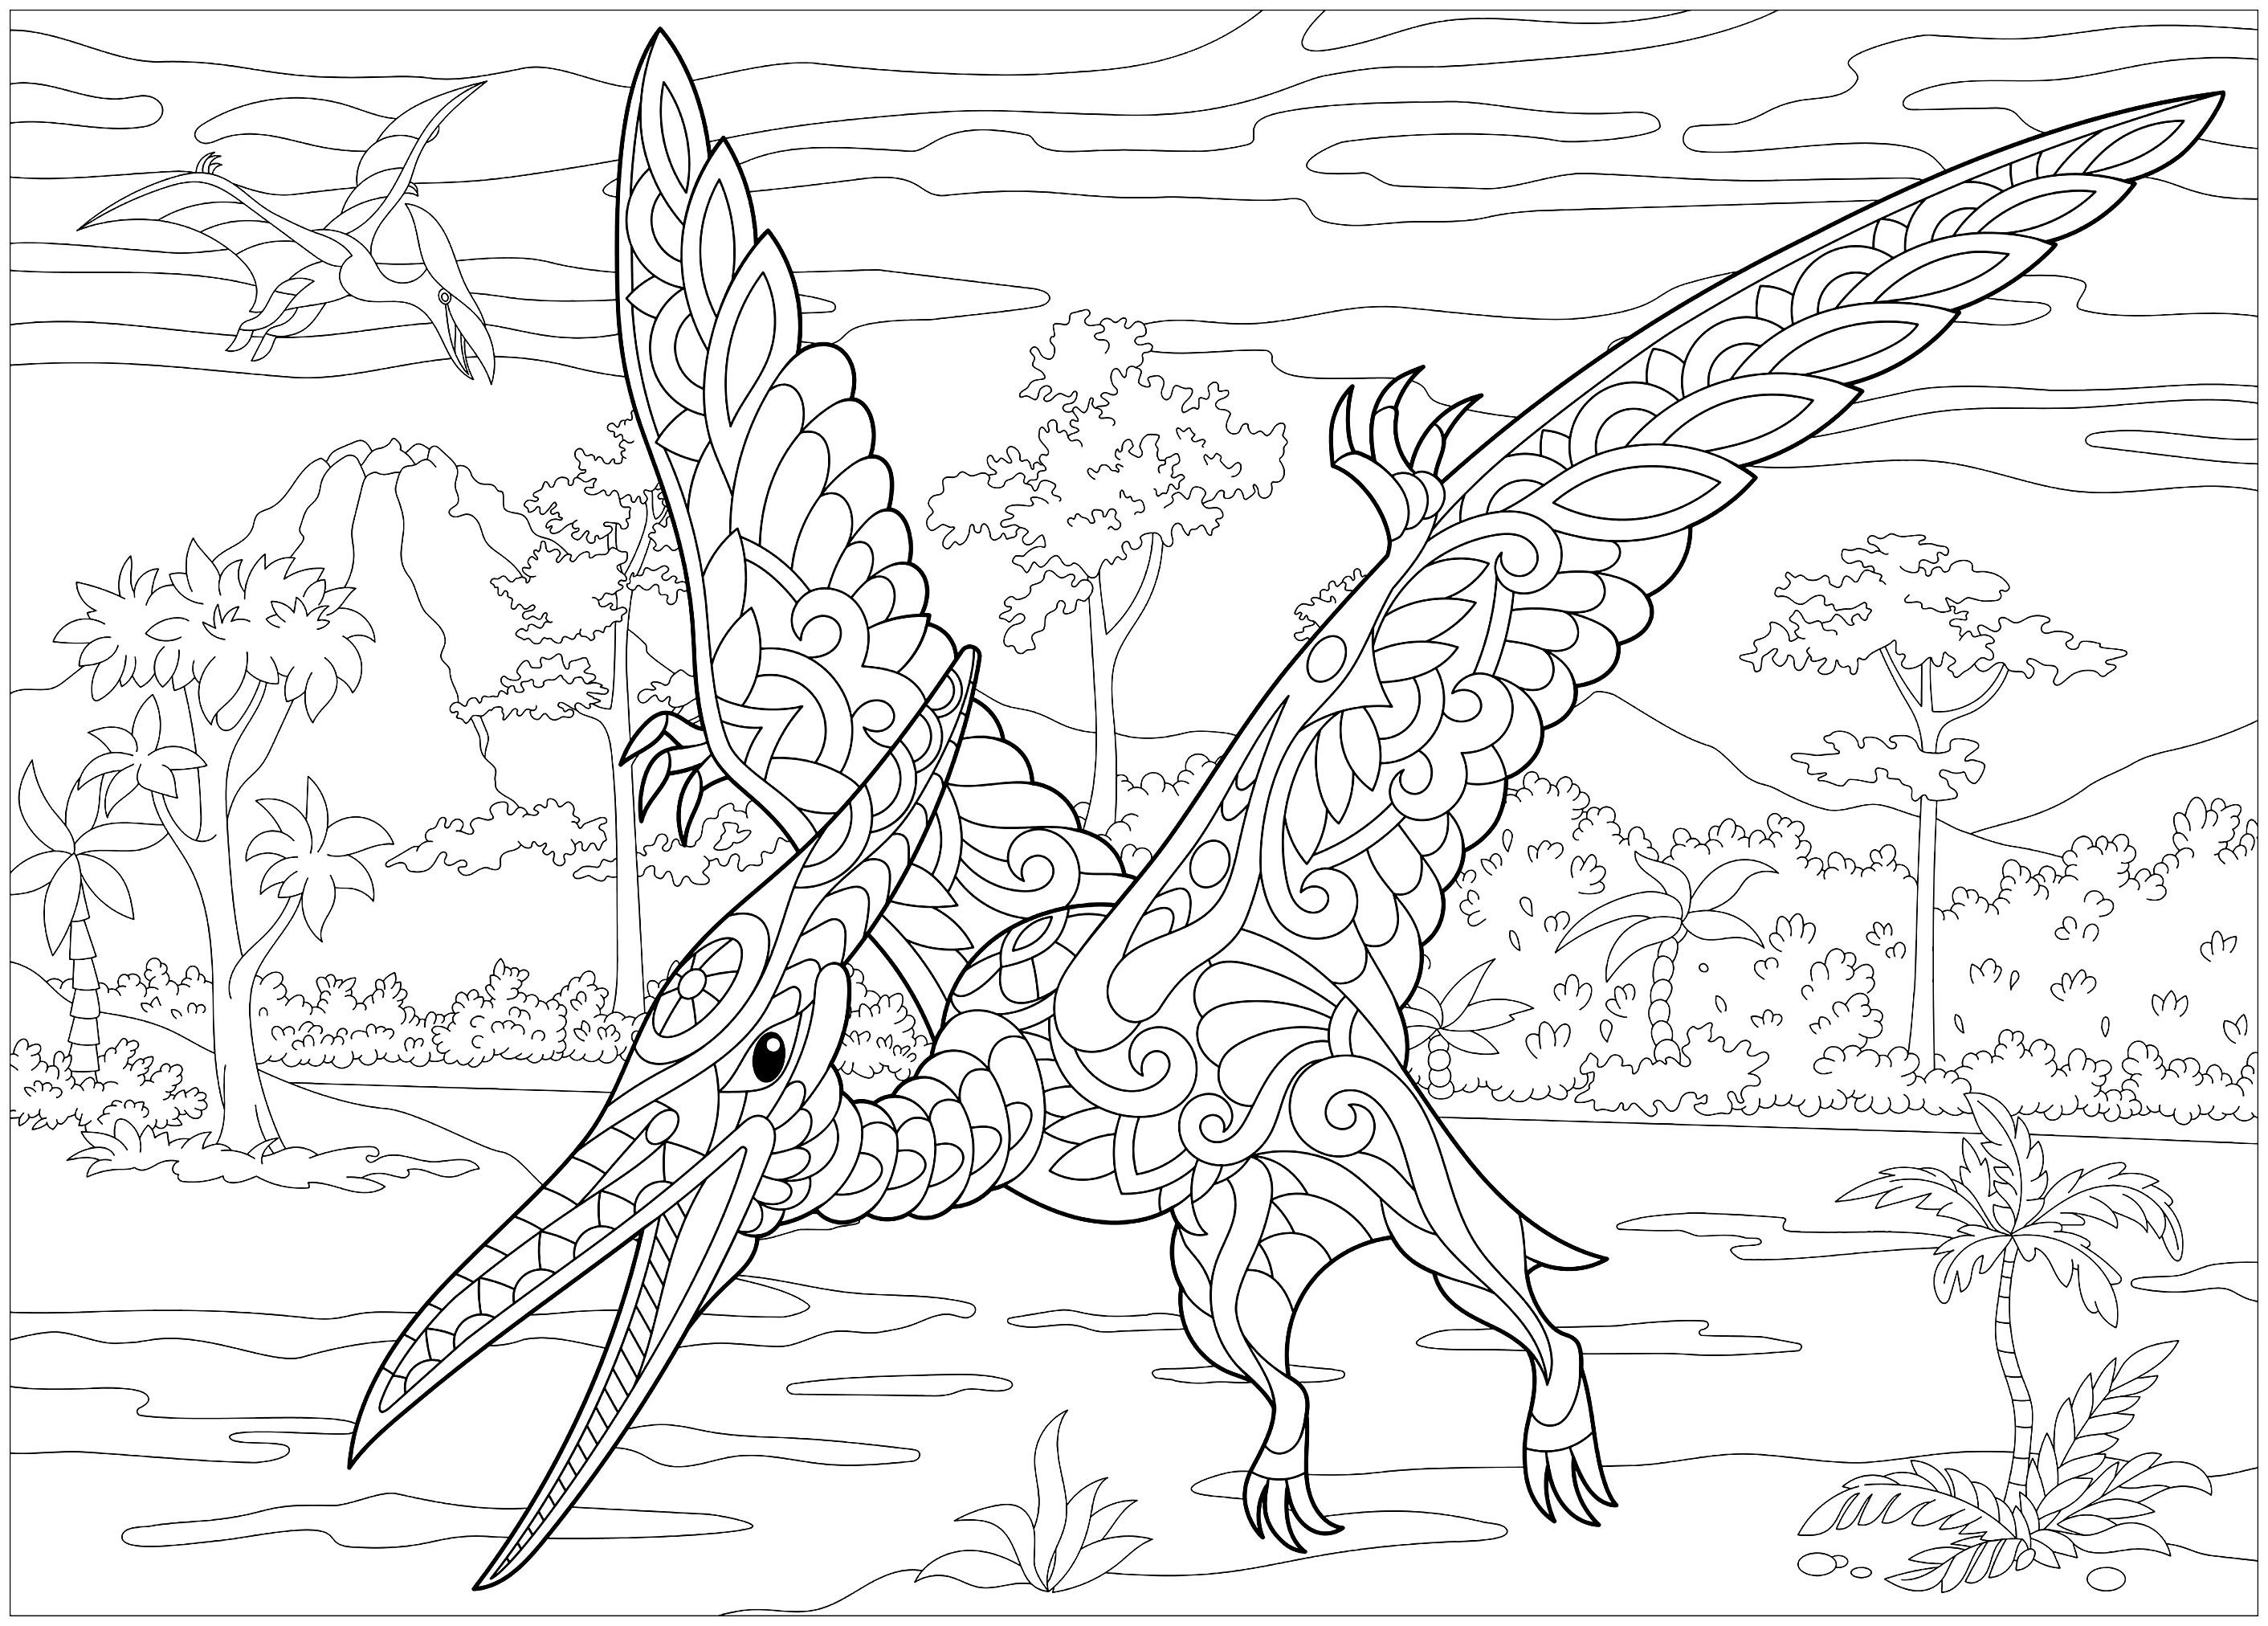 Pterodactyl Dinosaurs Coloring Pages For Adults Just Color